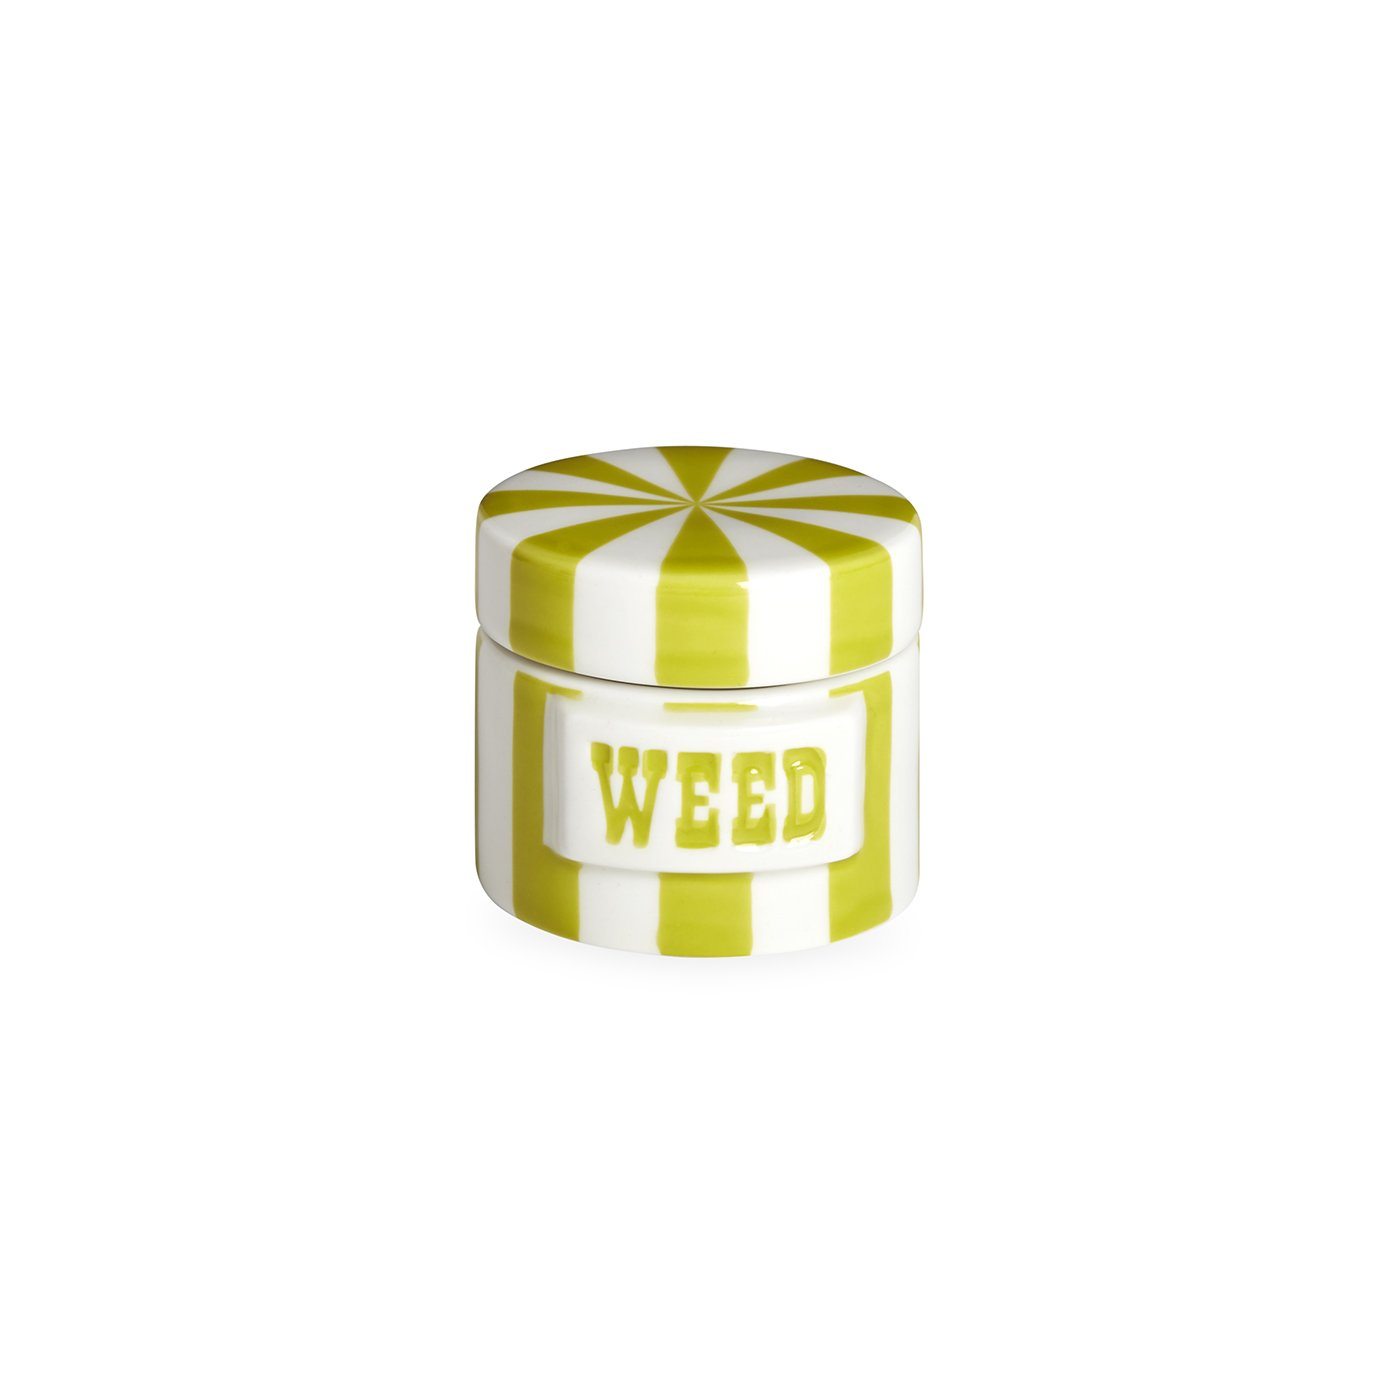 Jonathan Adler - Canister - Weed - Lime & White